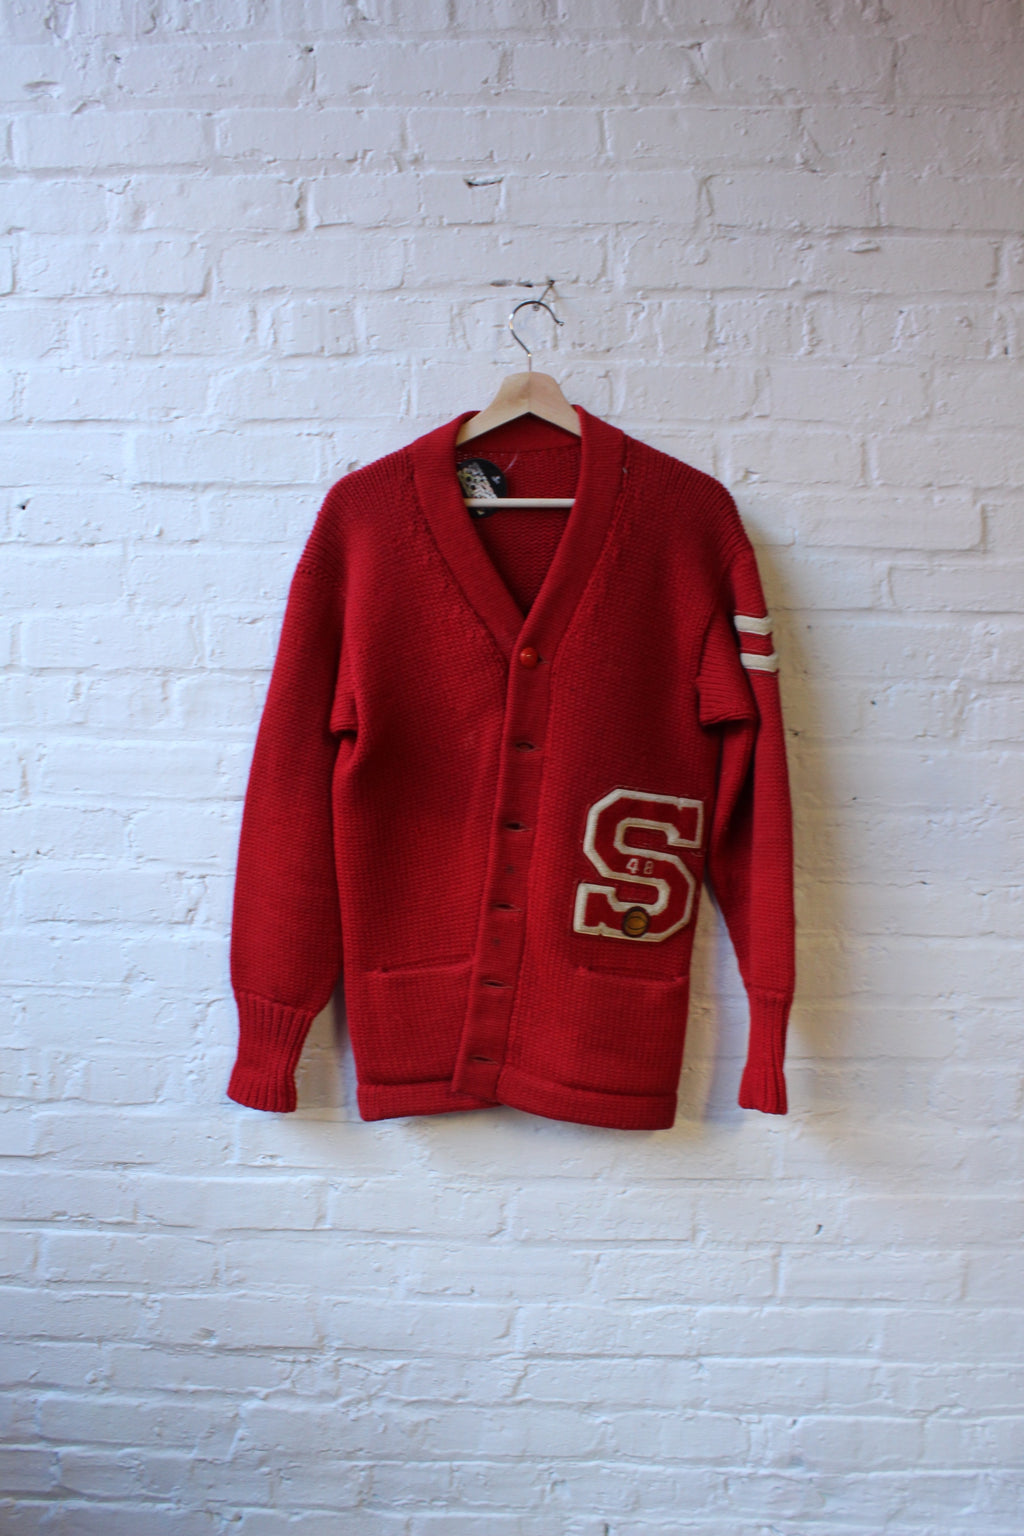 1948 Letterman Cardigan Sweater